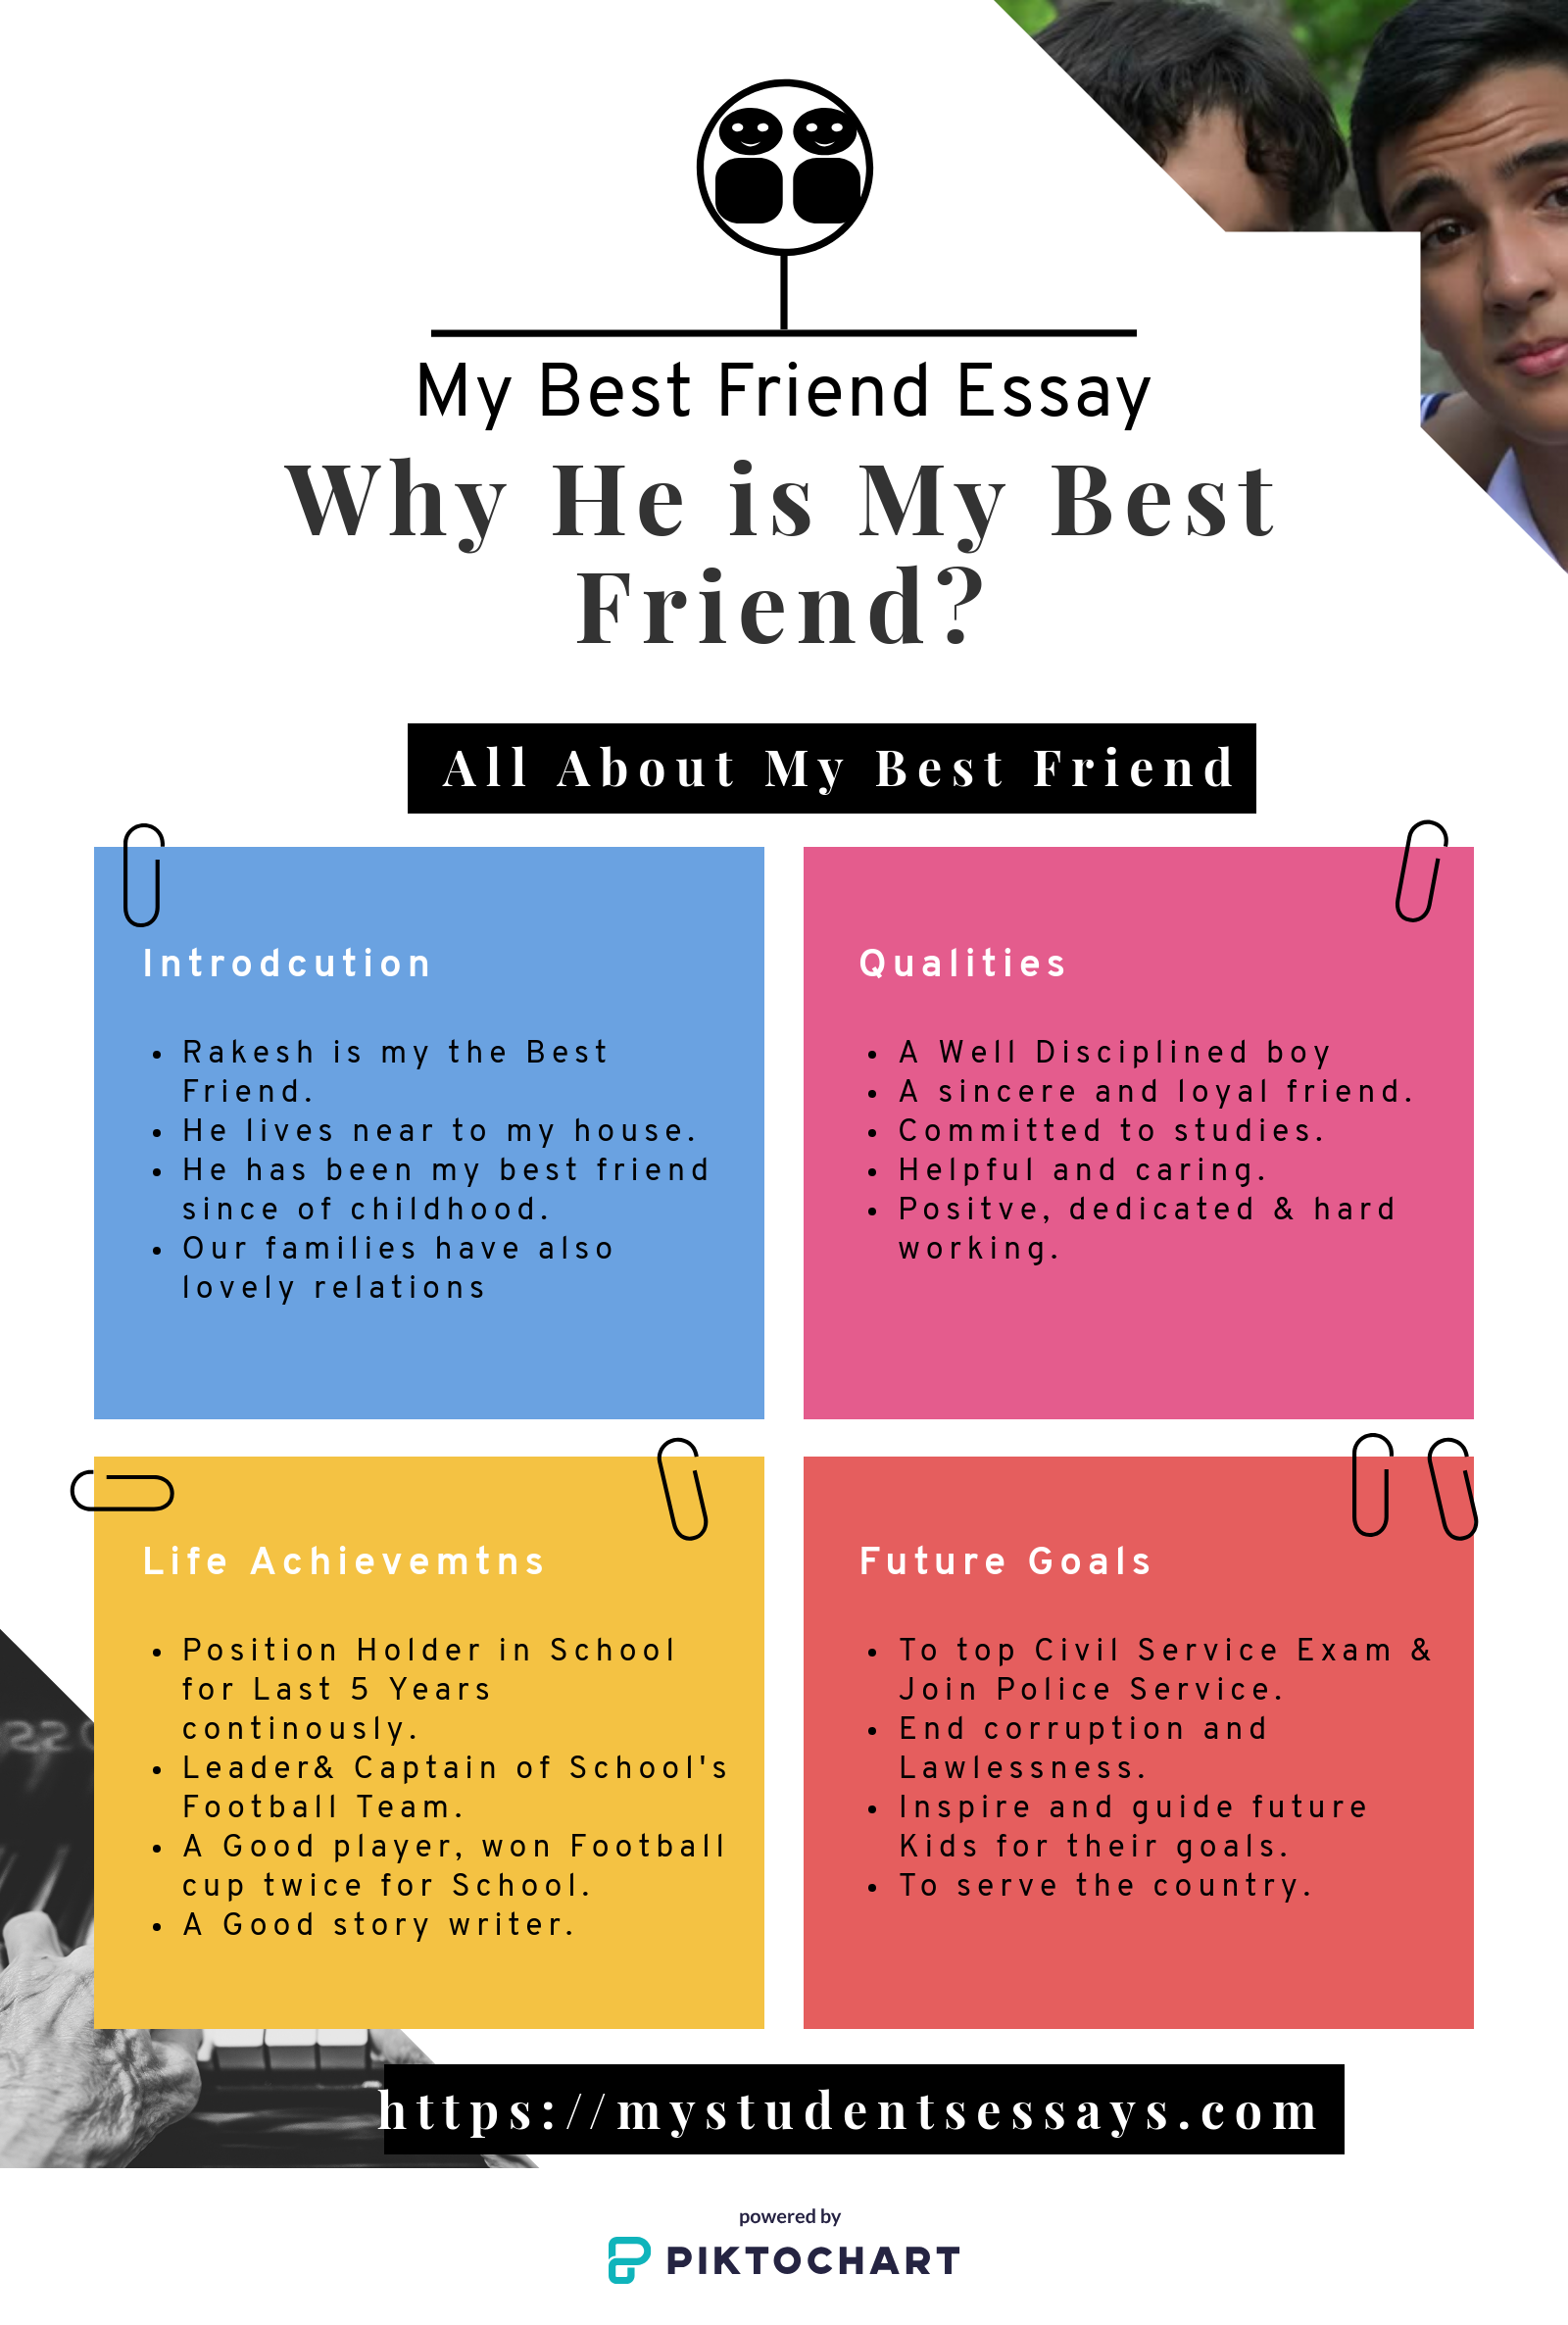 Essays on My Best Friend | Excellent Essays for Students